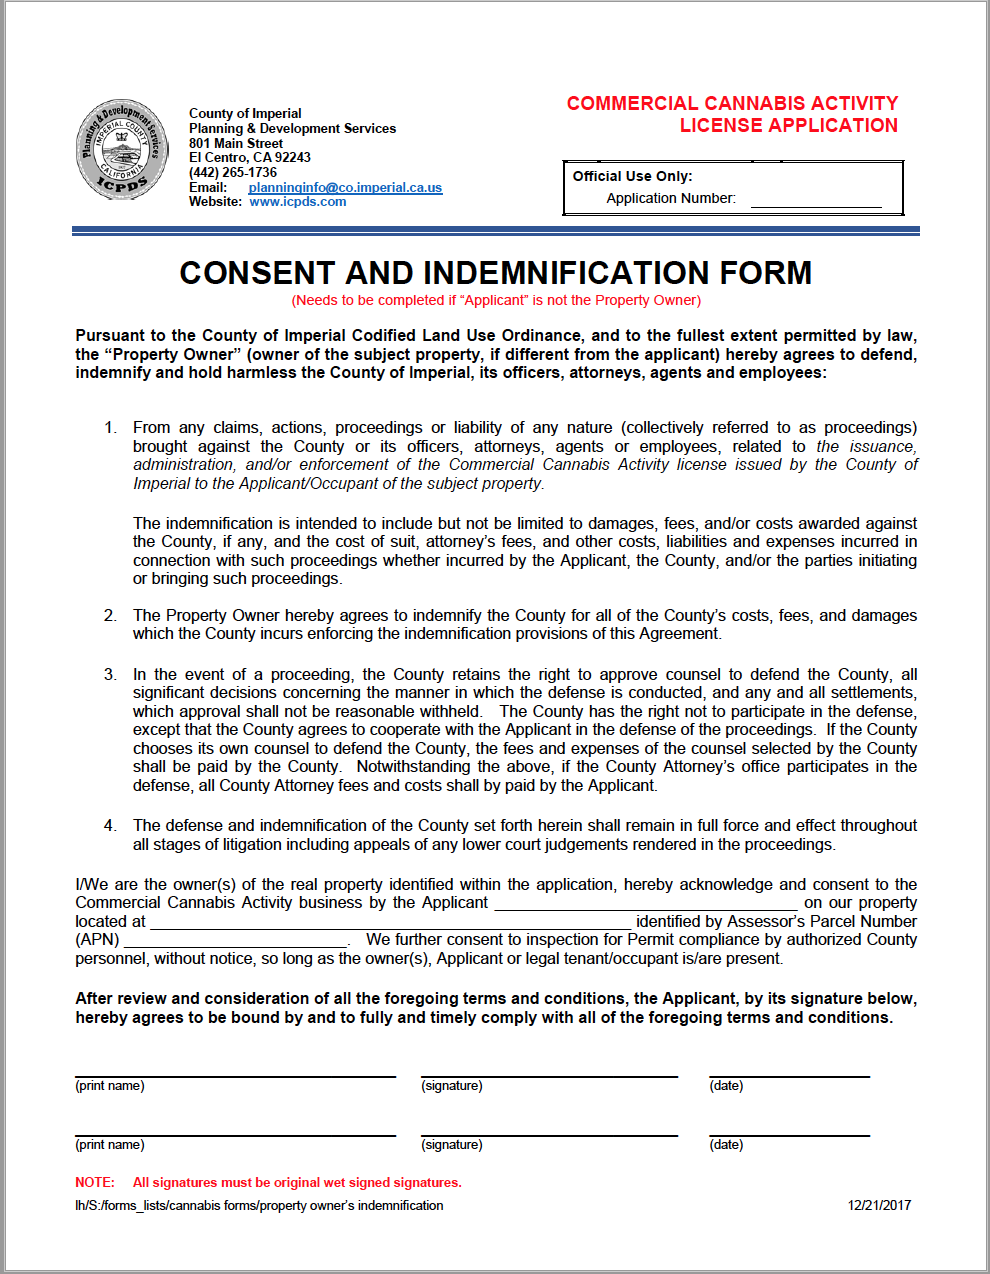 Indemnification Form.png